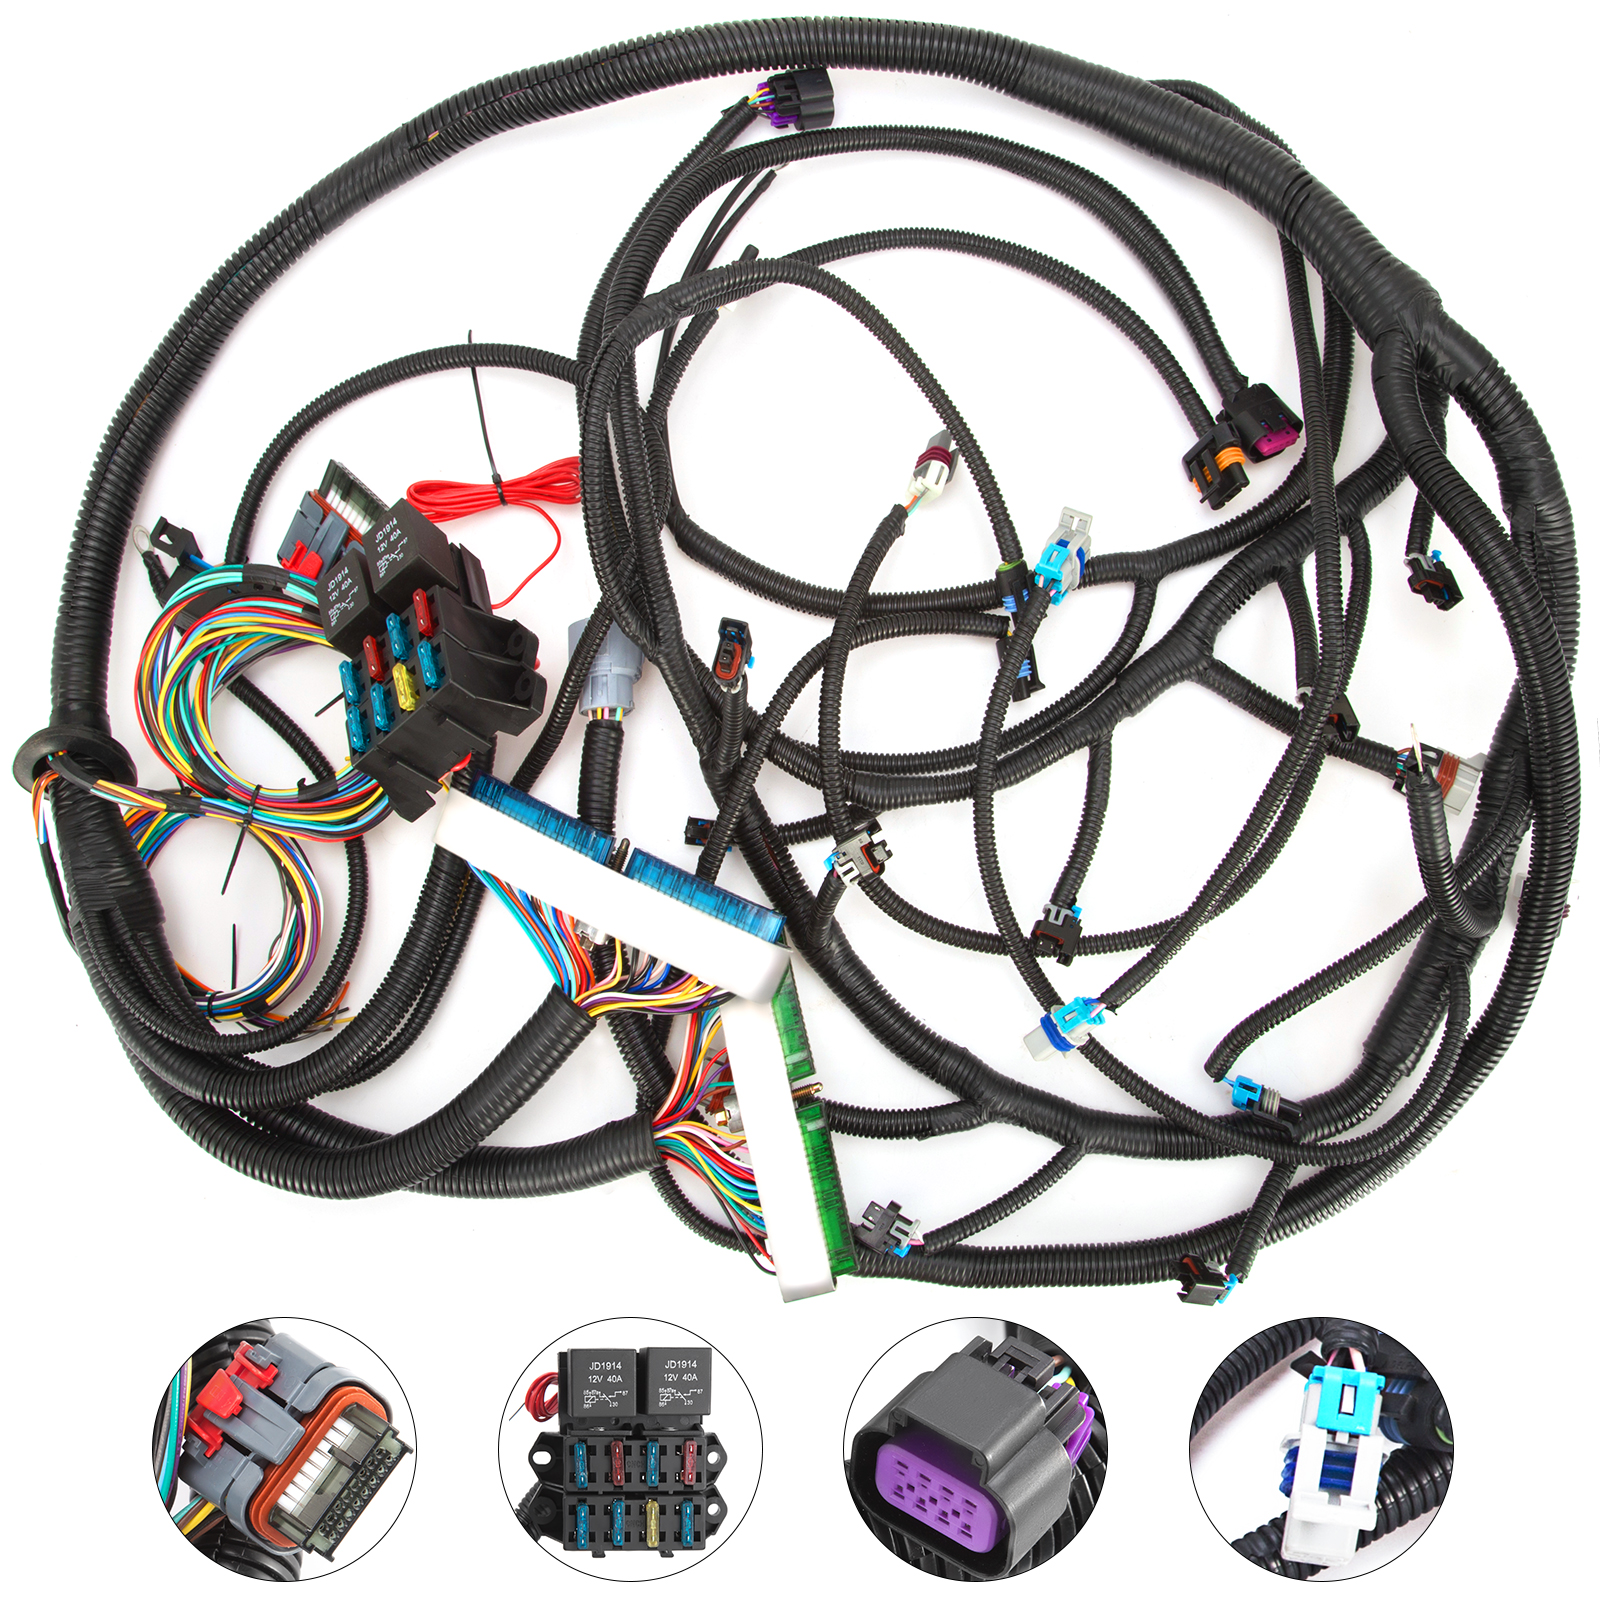 Details about HQ Wire Harness 2003 to 2007 LS1/LSX Vortec Standalone on safety harness, oxygen sensor extension harness, maxi-seal harness, radio harness, battery harness, suspension harness, obd0 to obd1 conversion harness, alpine stereo harness, pony harness, dog harness, engine harness, pet harness, amp bypass harness, cable harness, nakamichi harness, electrical harness, fall protection harness,